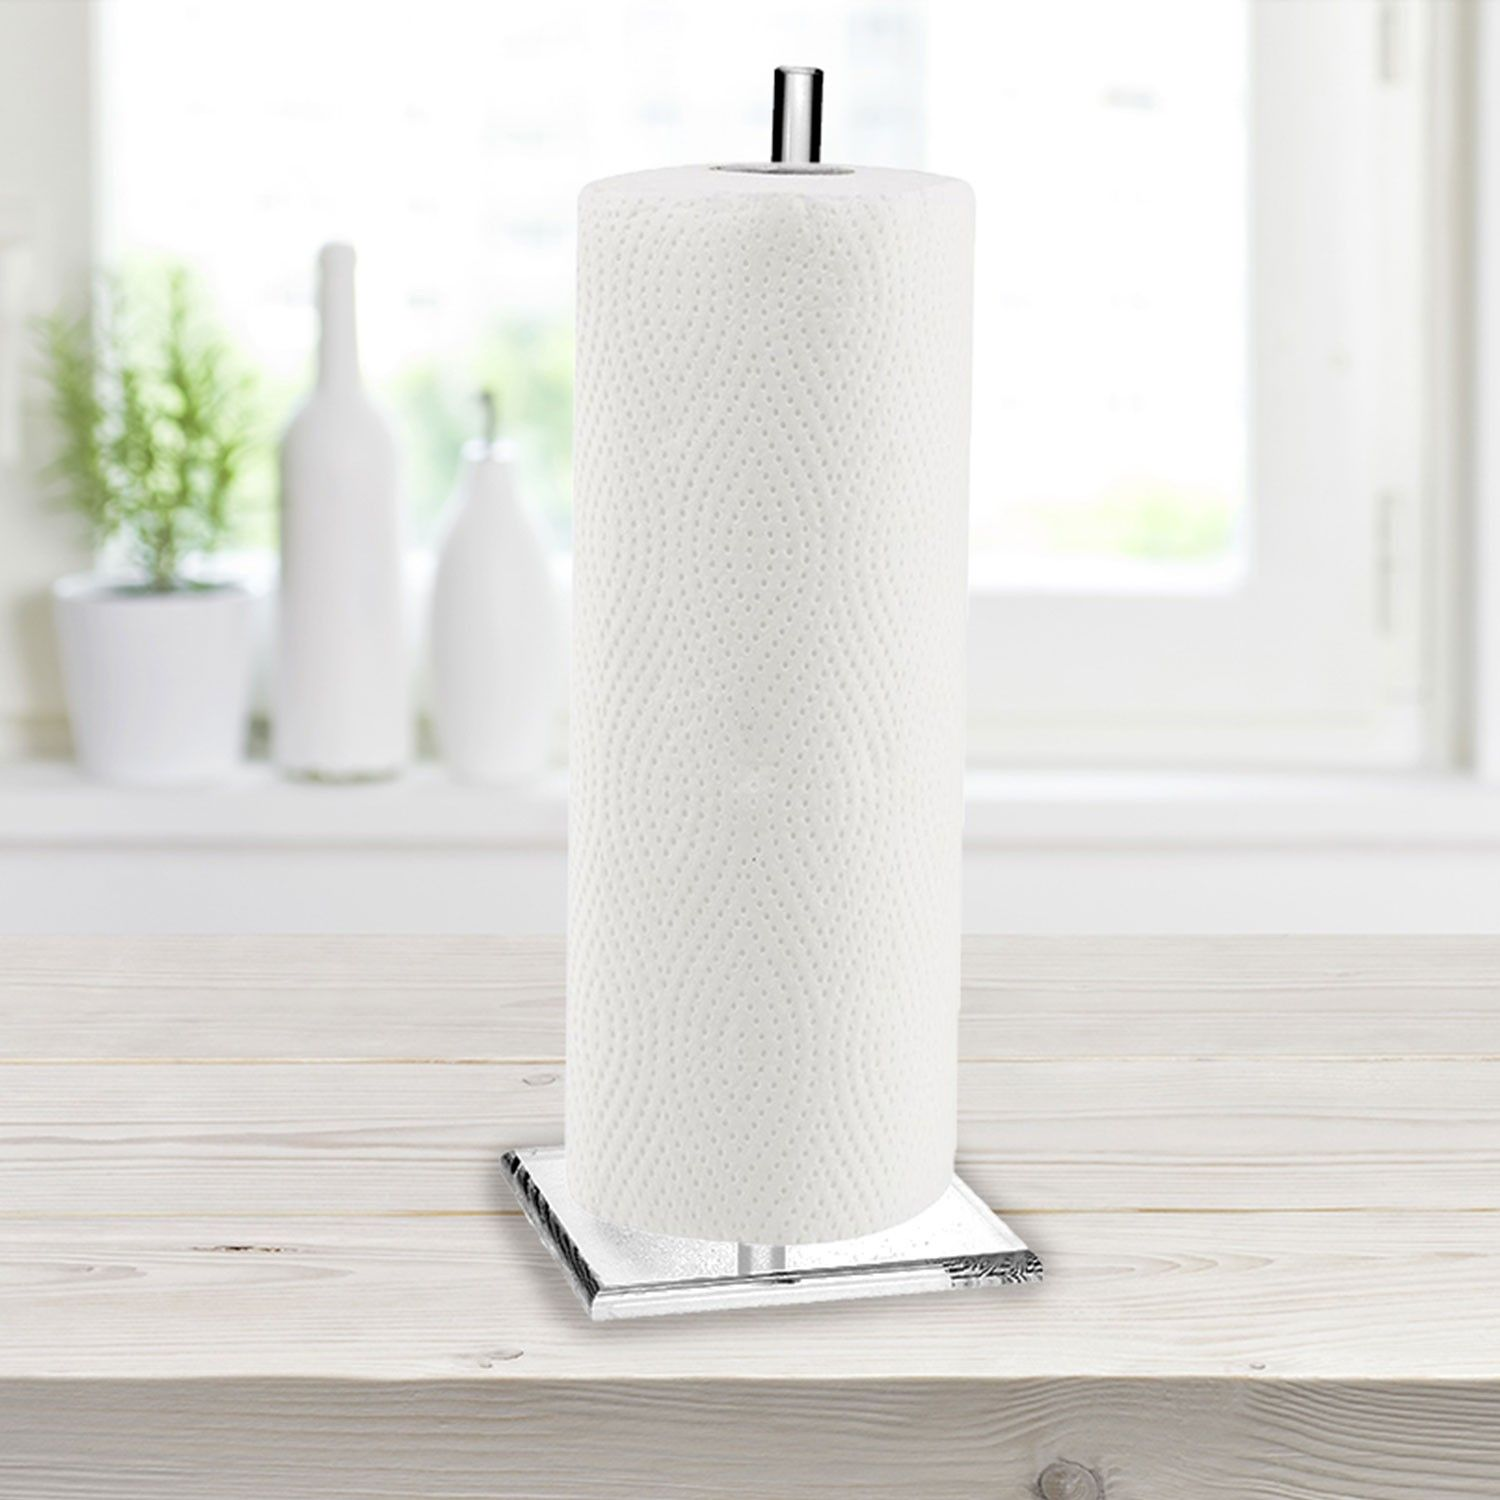 Clear Acrylic Paper Tower Holder For Countertop The Base Meaasures